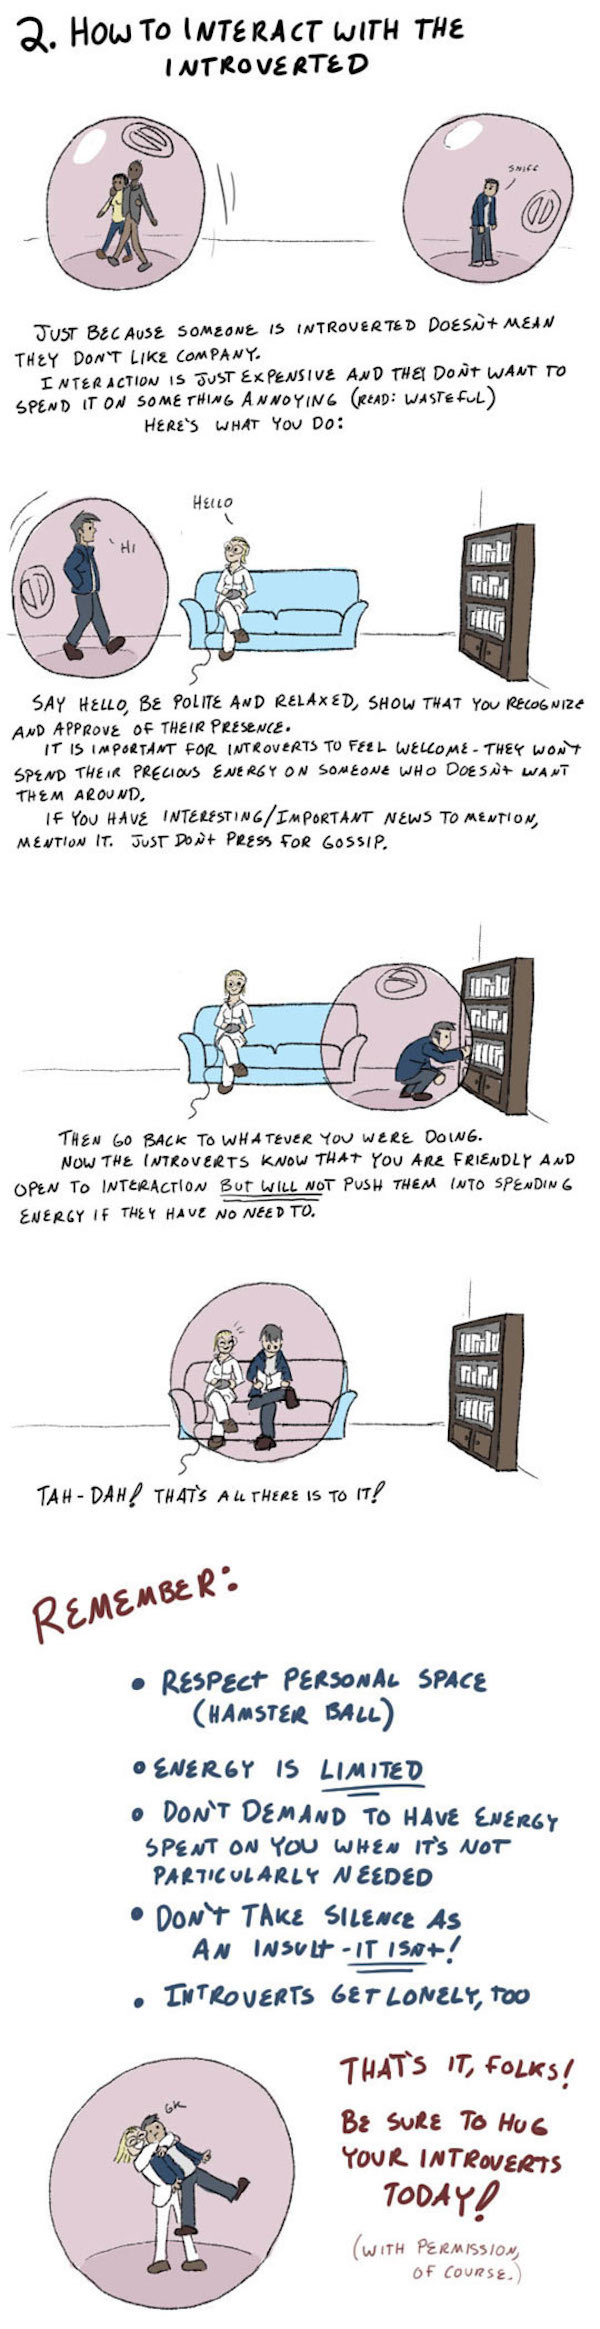 How to deal with introverts